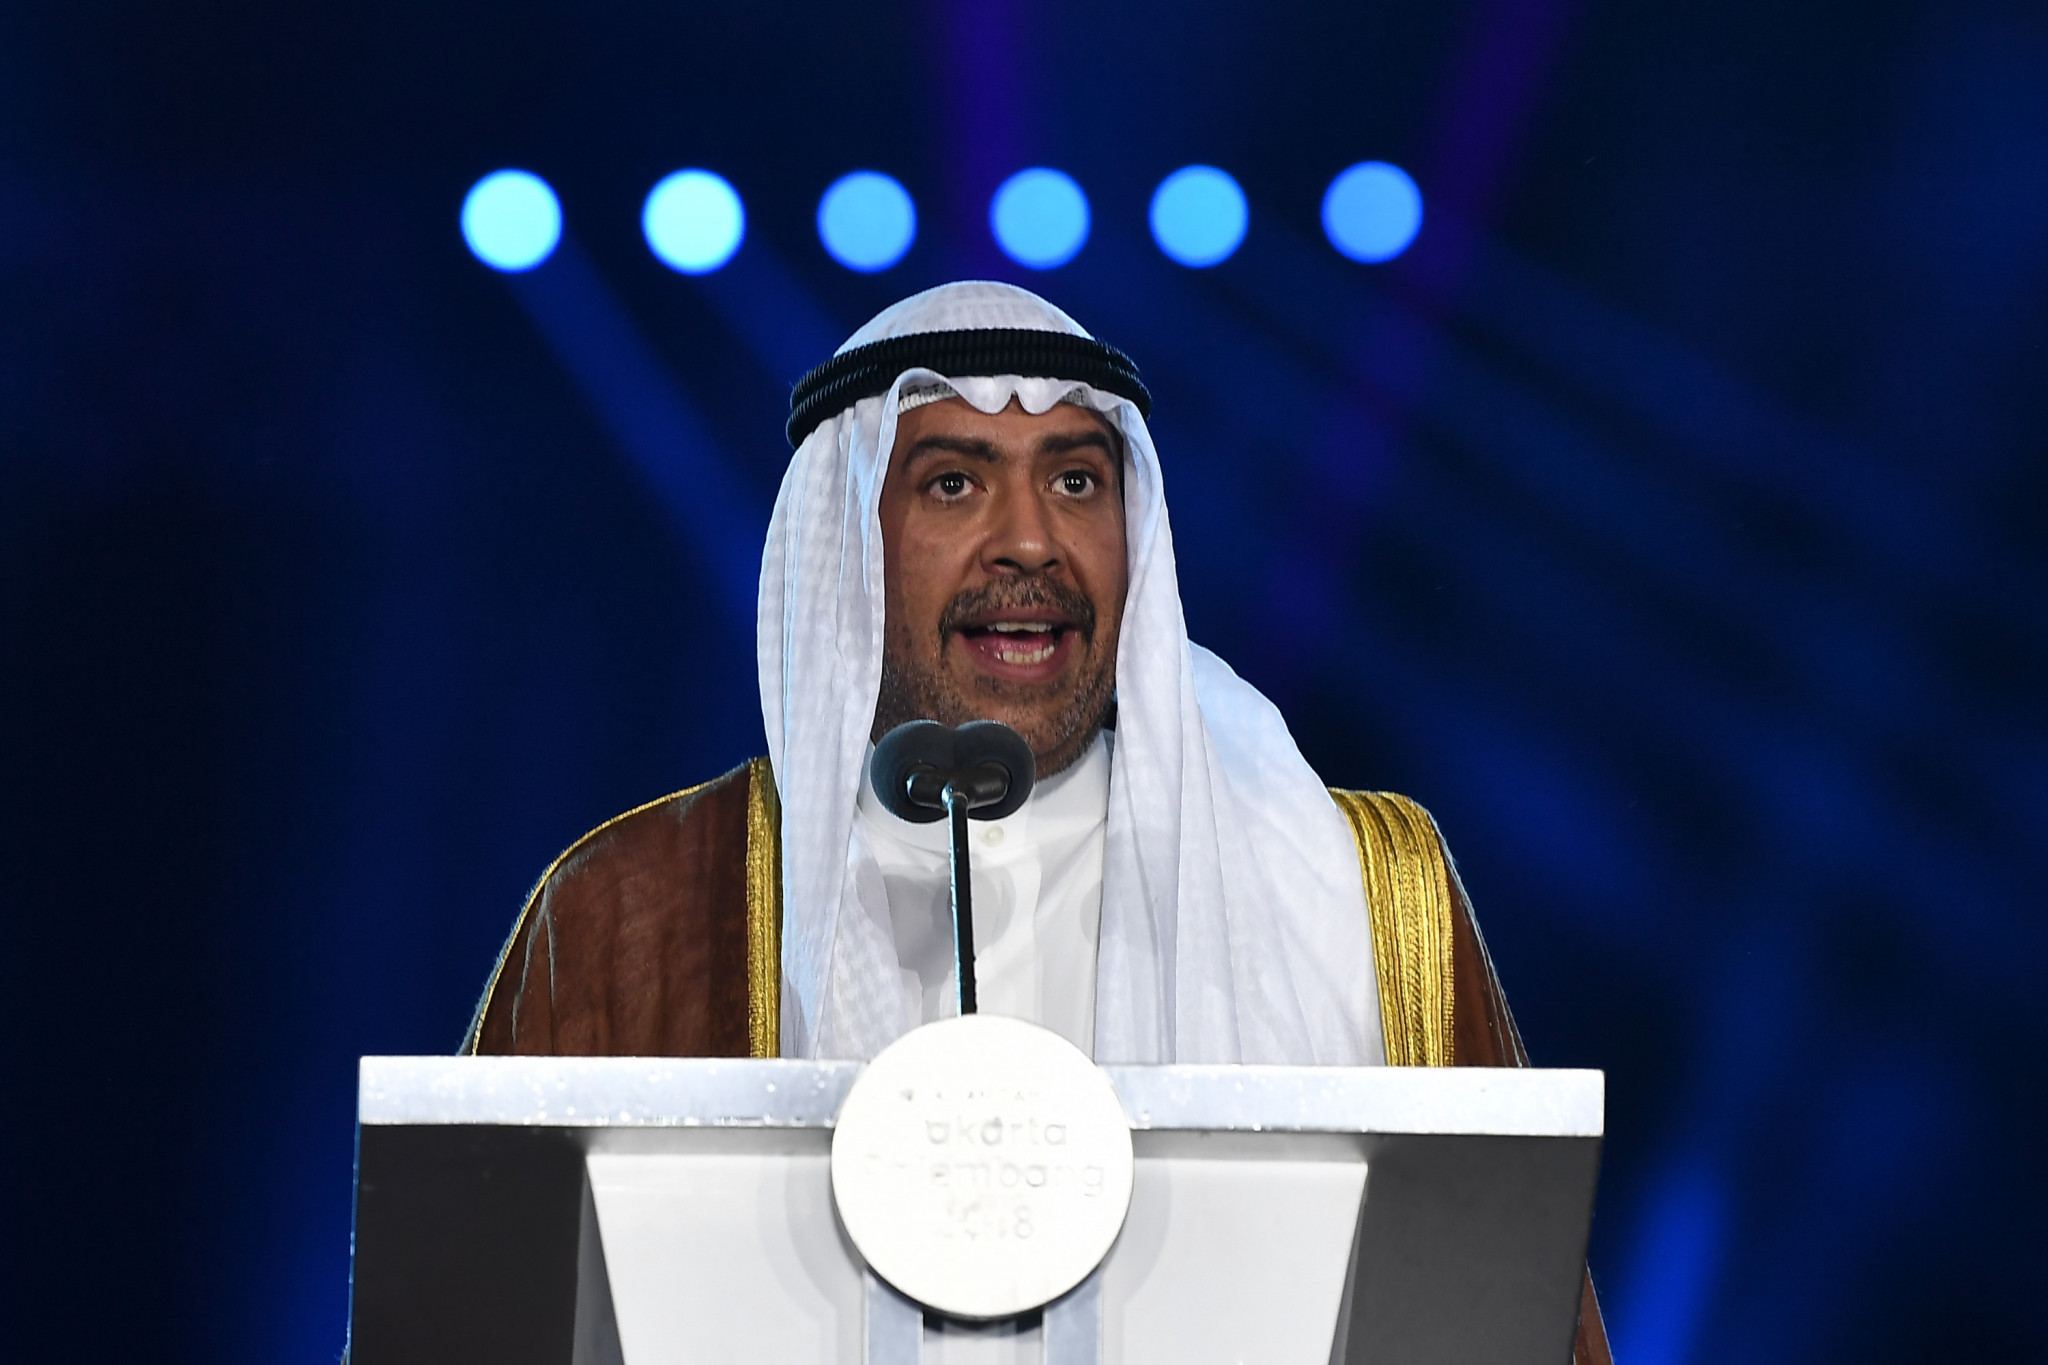 A statement has claimed Sheikh Ahmad has been